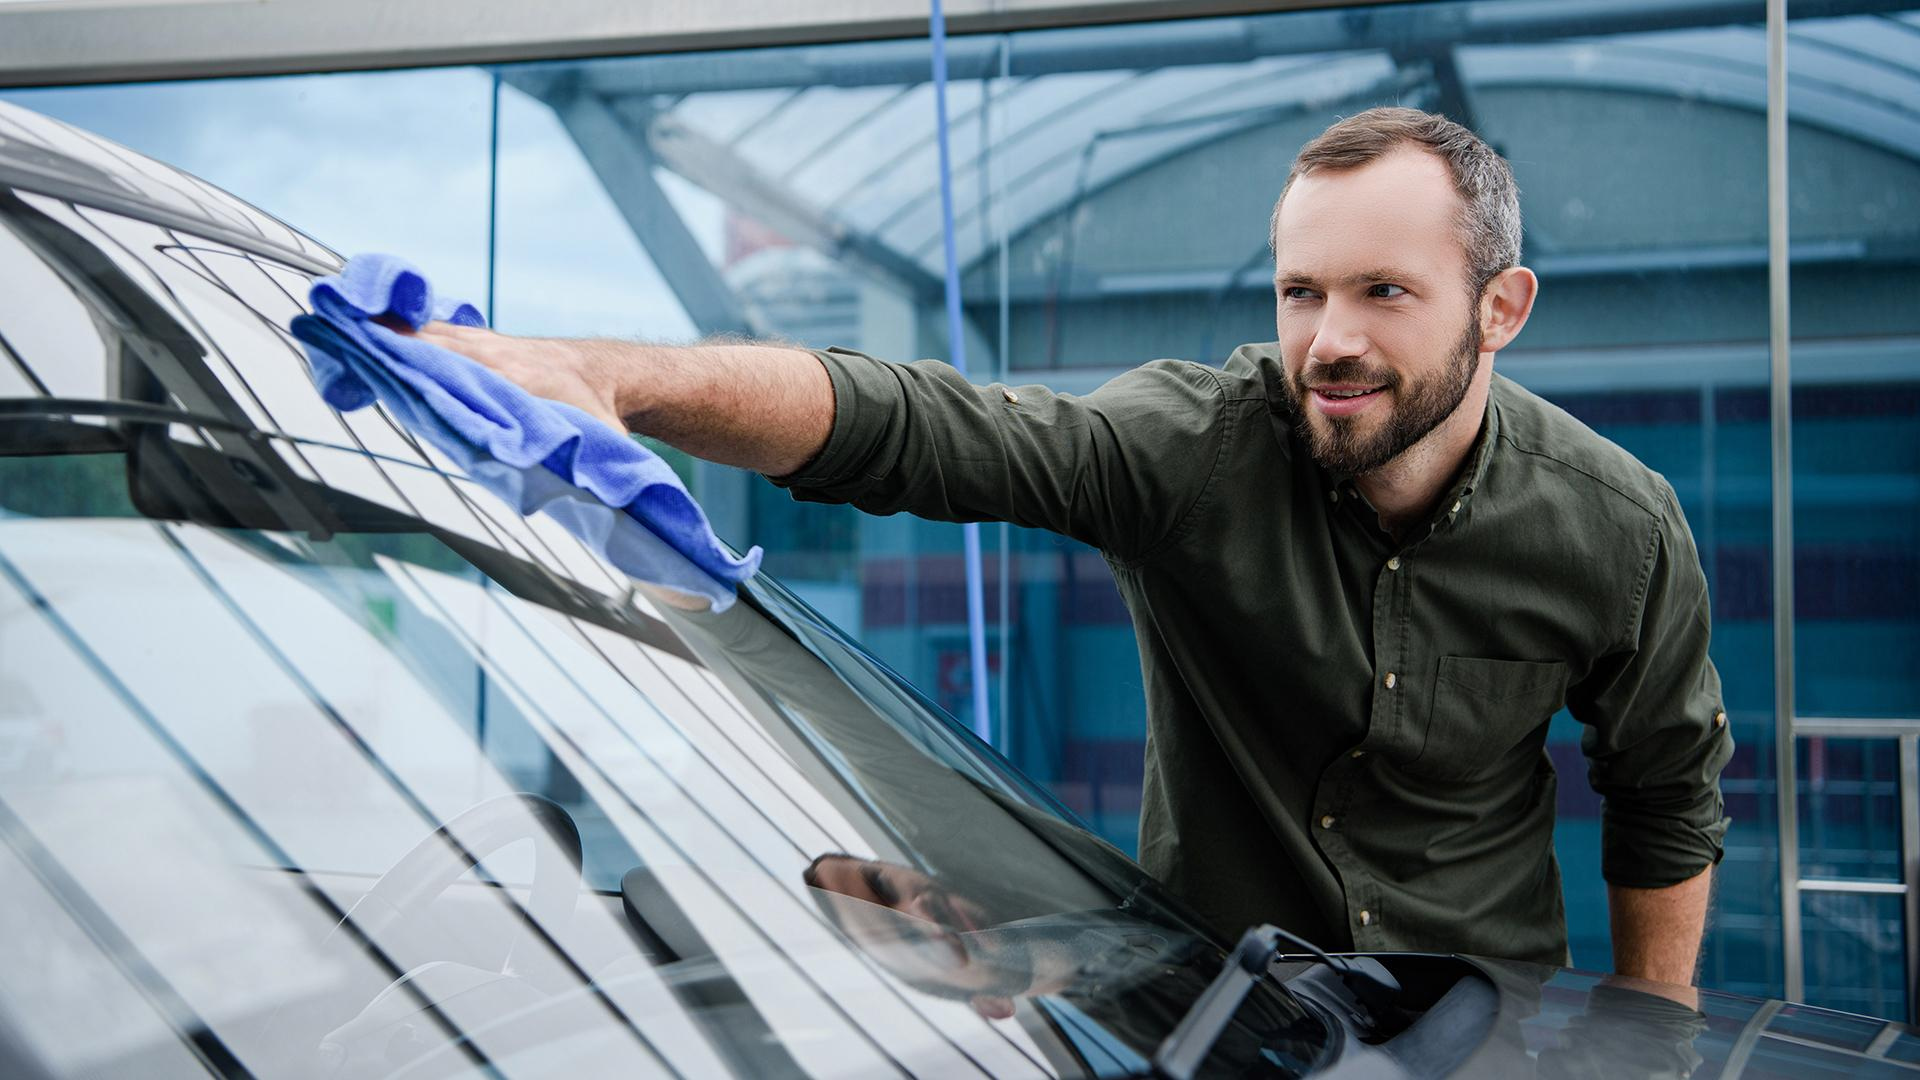 How To Clean Car Windows In 4 Simple Steps